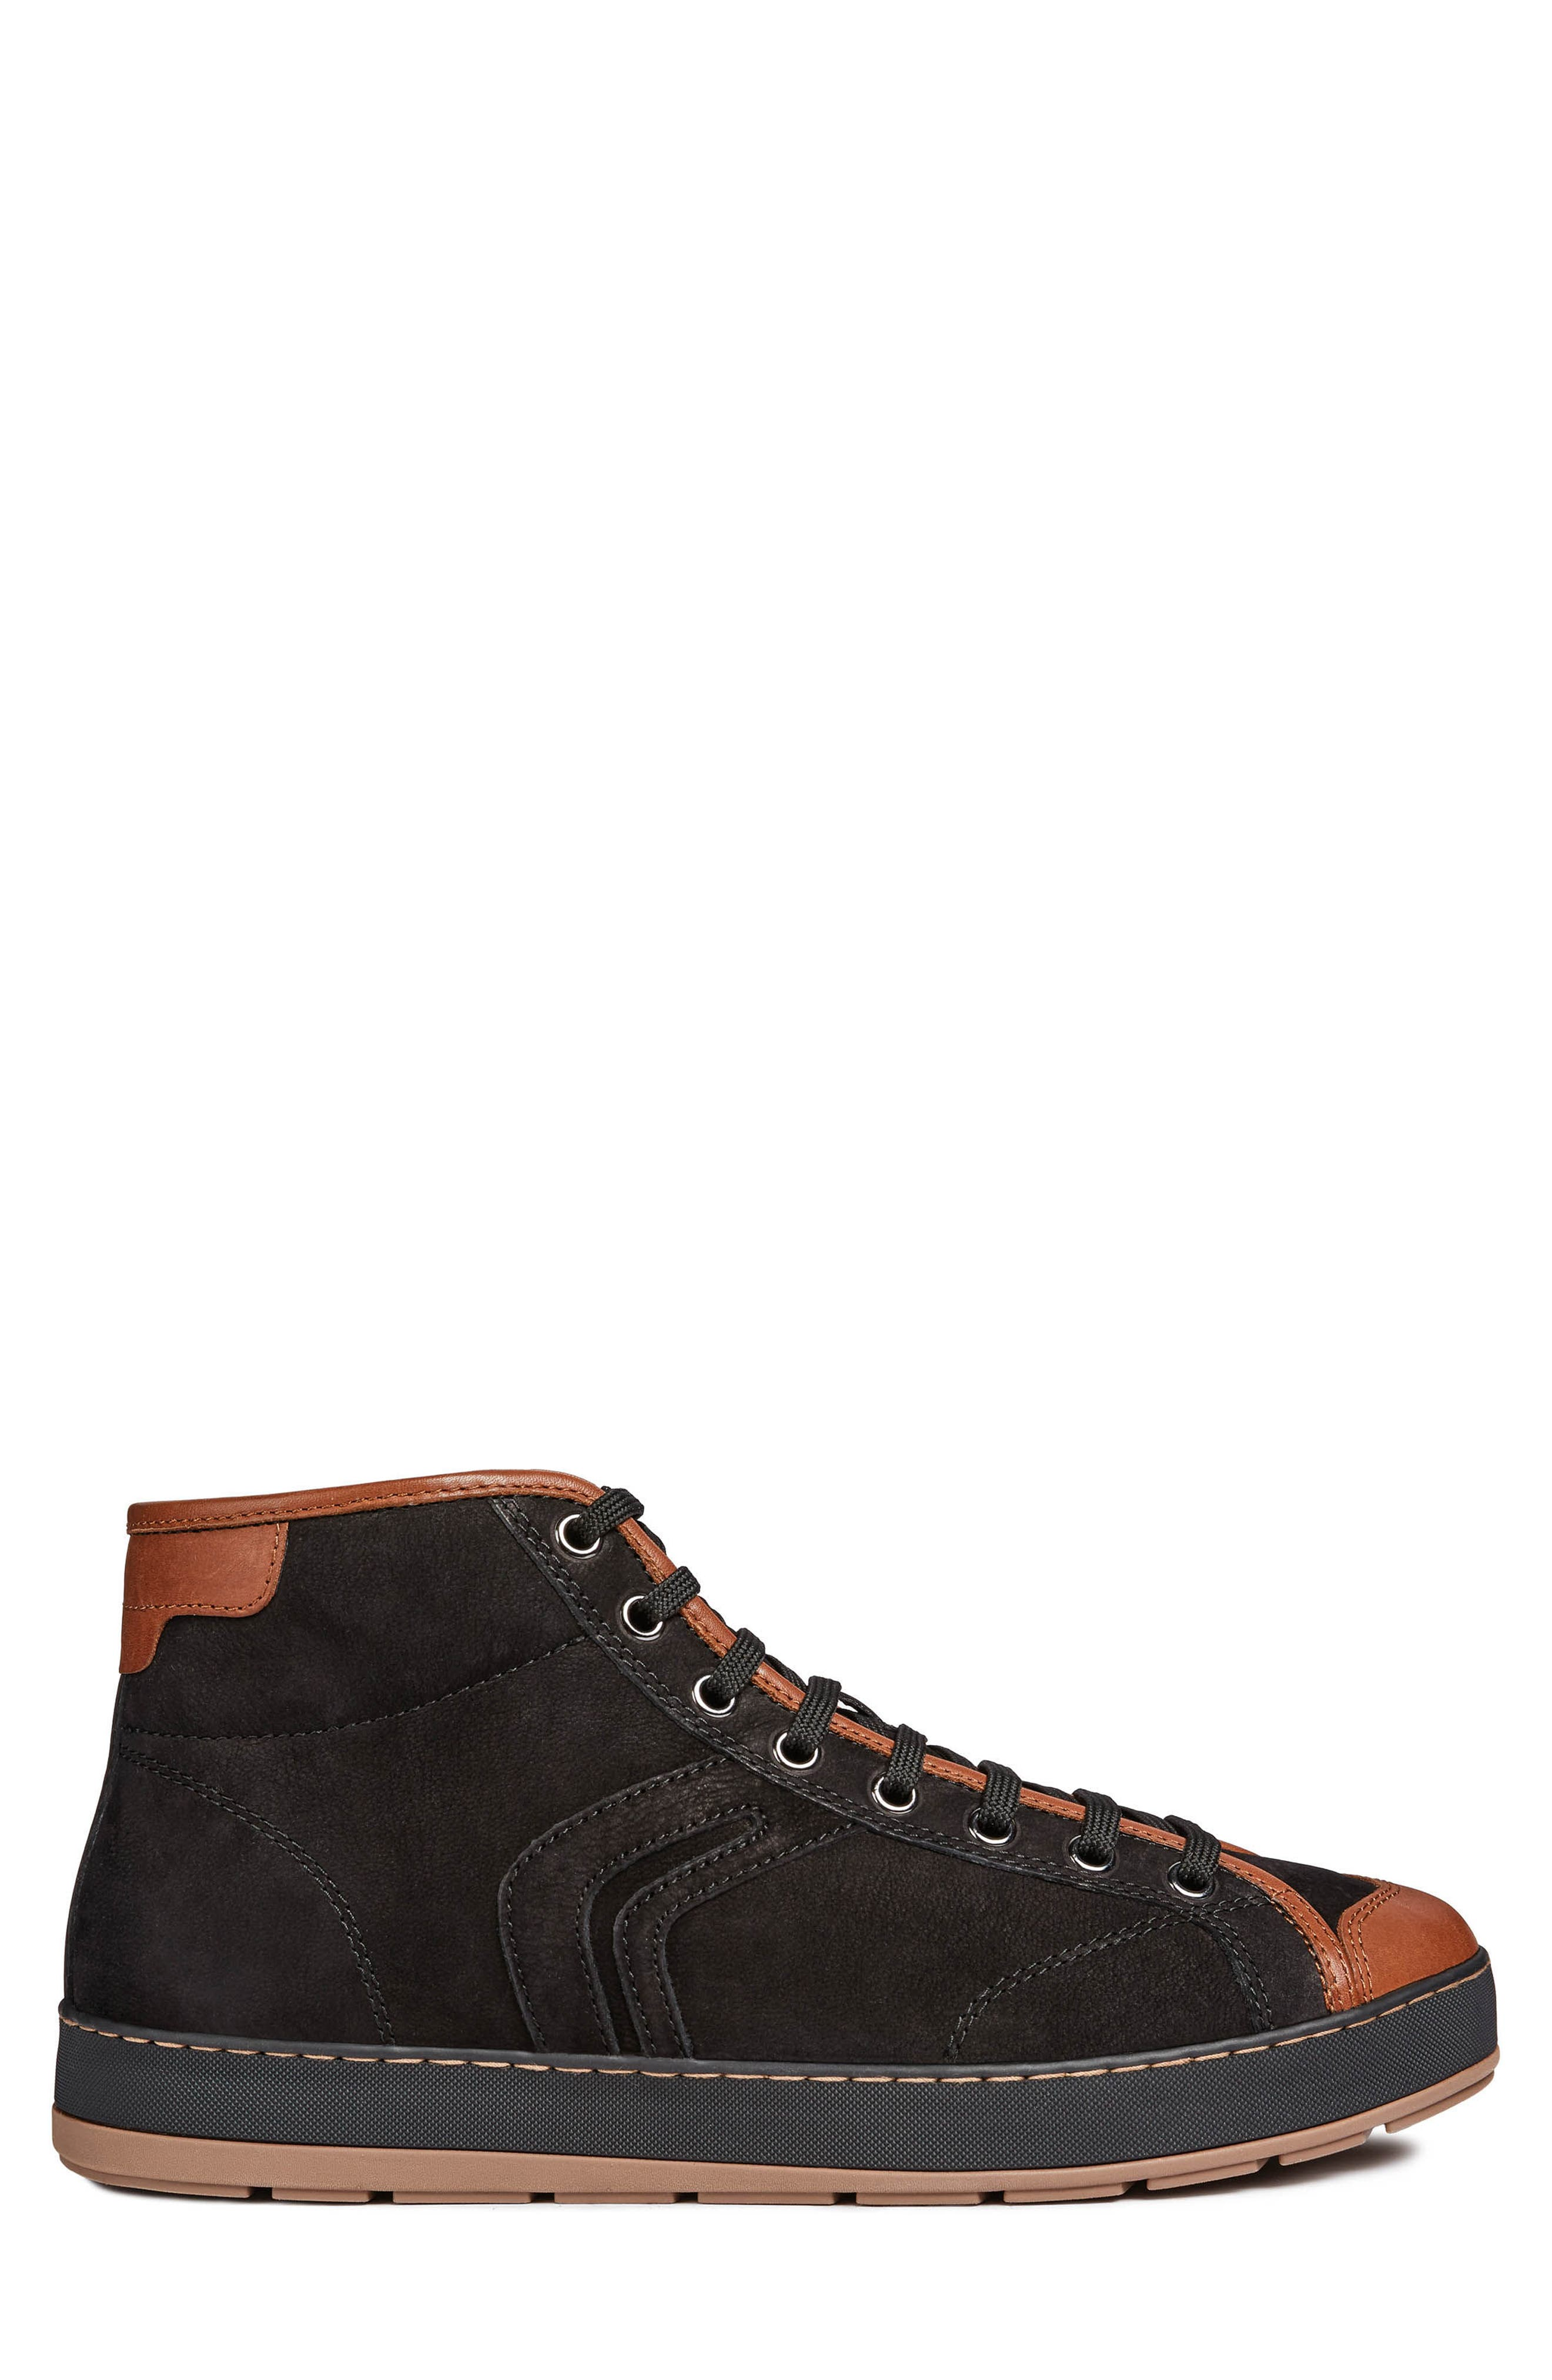 Ariam High Top Sneaker,                             Alternate thumbnail 3, color,                             203